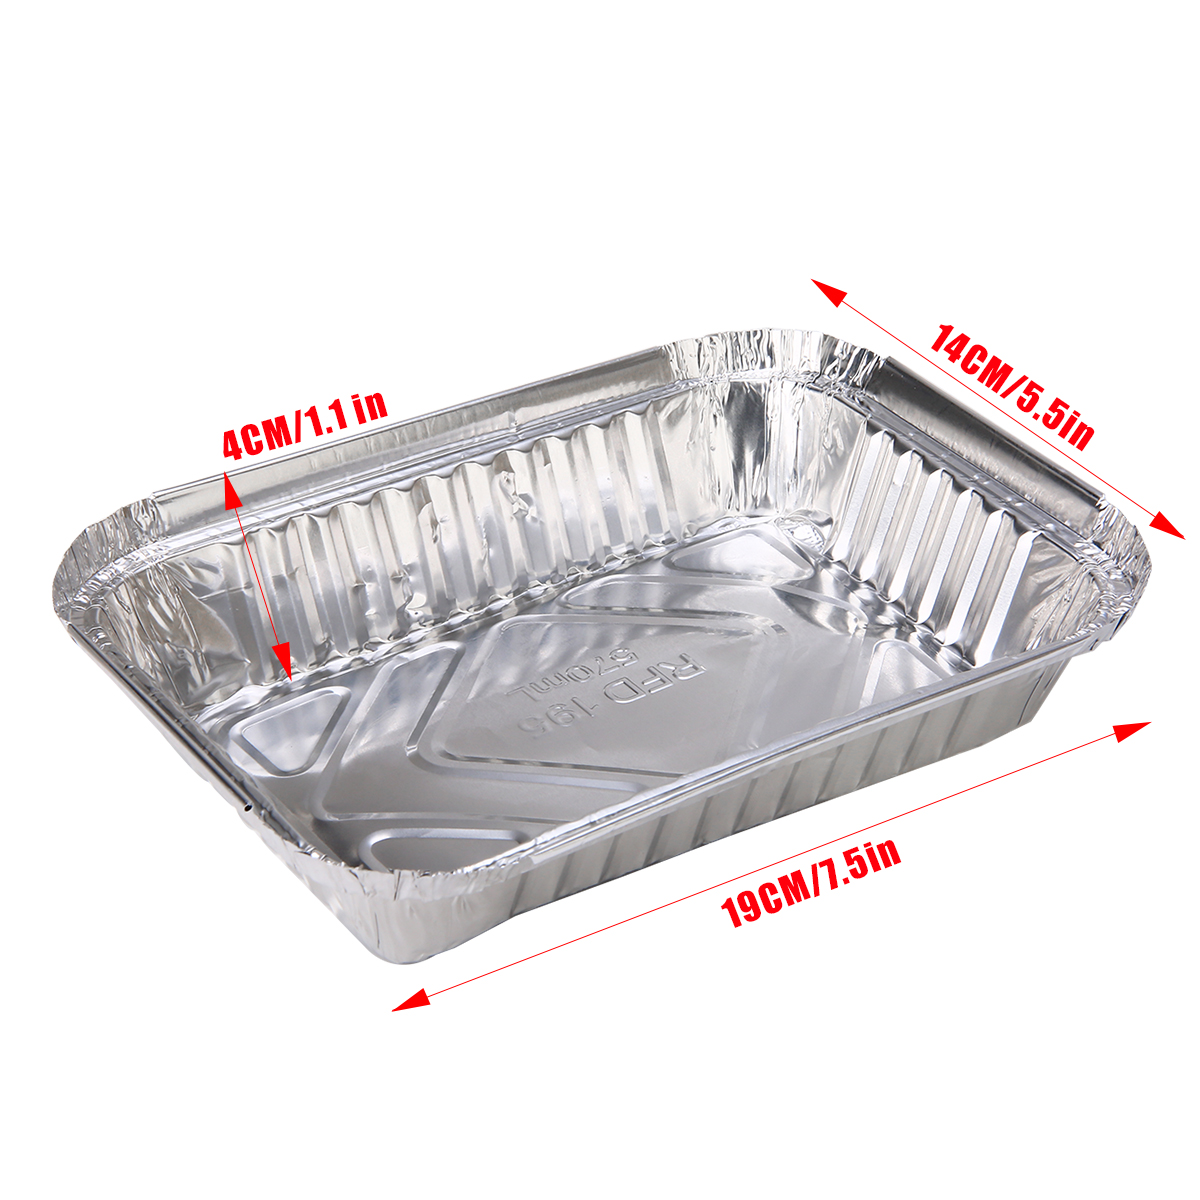 30pcs BBQ Aluminum Foil Grease Drip Pans Recyclable Grill Catch Tray Catch Pans Replacement Liner Trays For BBQ Tools in Pans from Home Garden